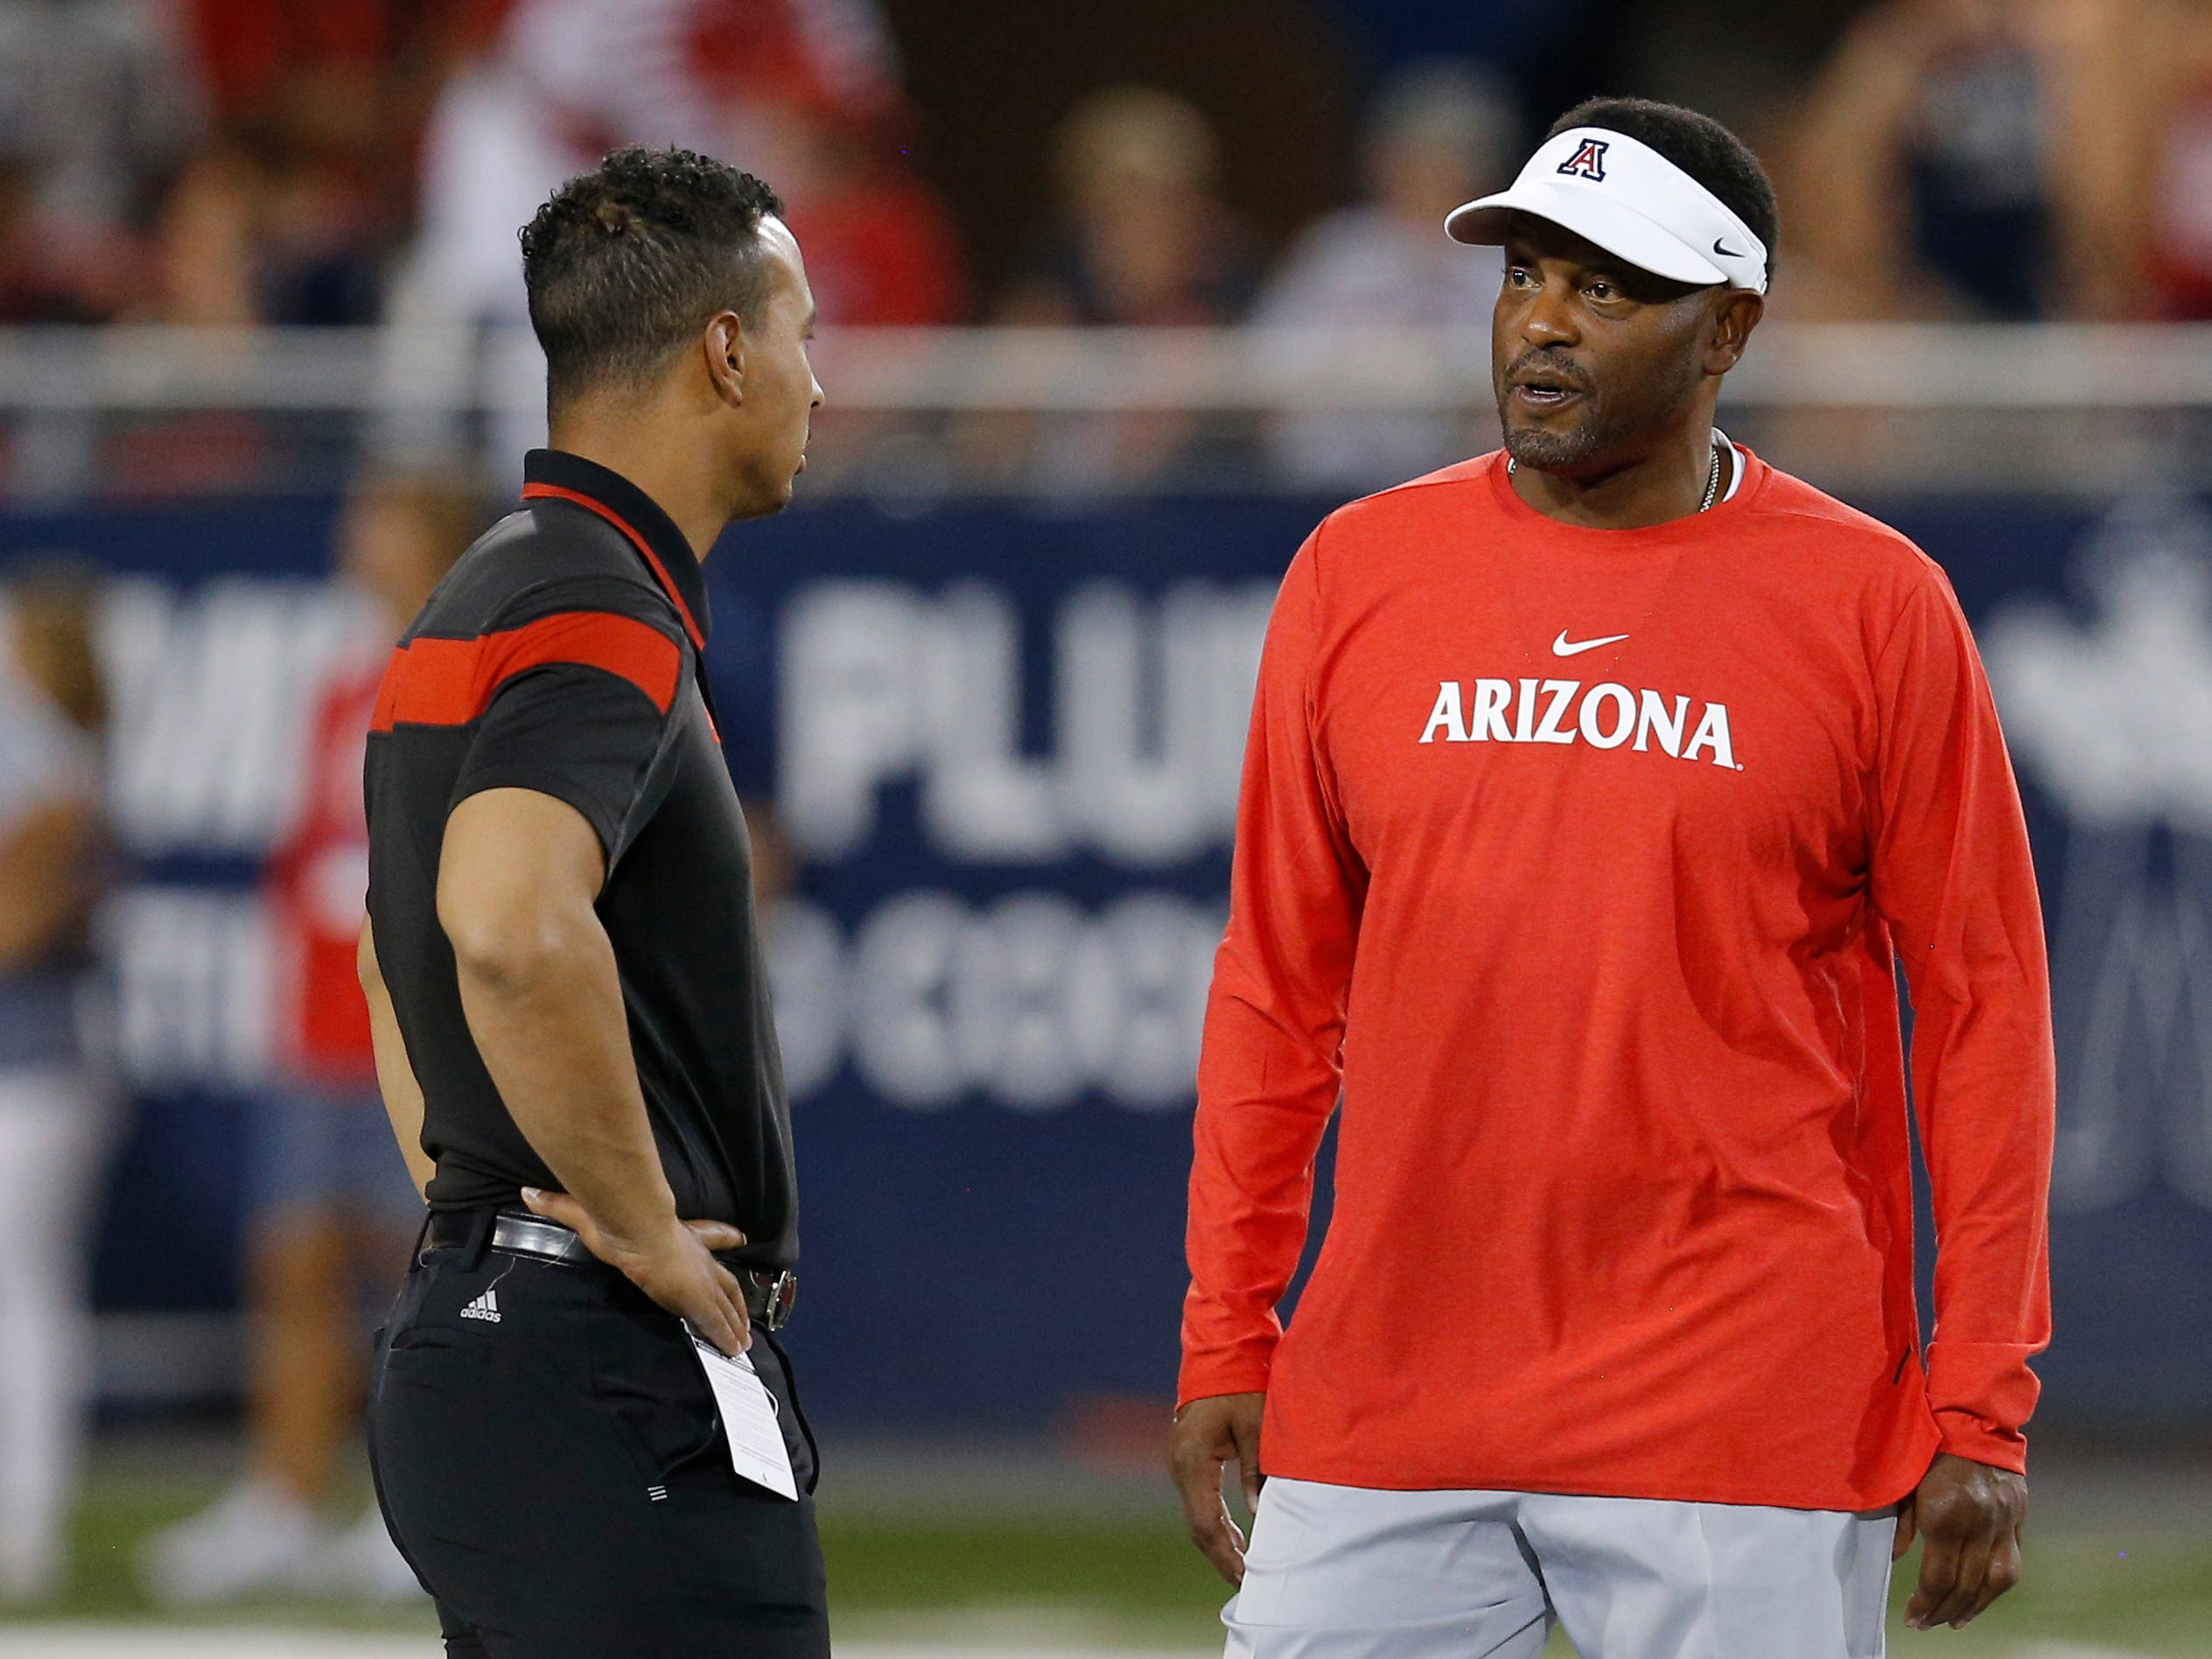 Southern Utah head coach Demario Warren and Arizona head coach Kevin Sumlin talk before an NCAA college football game, Saturday, Sept. 15, 2018, in Tucson, Ariz. (AP Photo/Rick Scuteri)